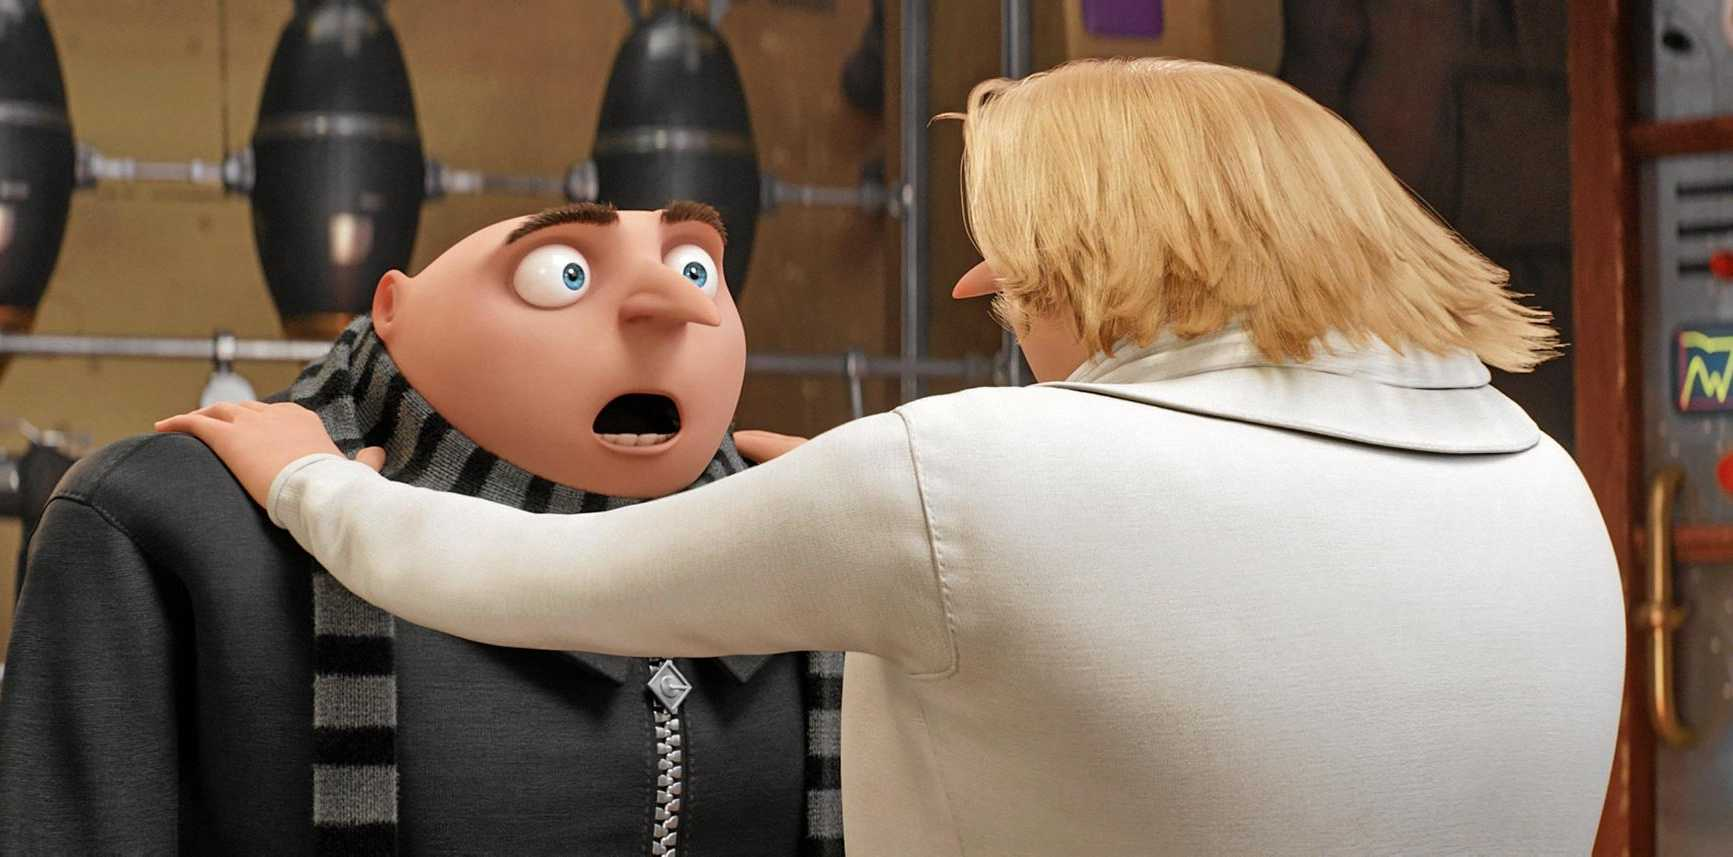 Gru meets his twin brother Dru in a scene from the movie Despicable Me 3.